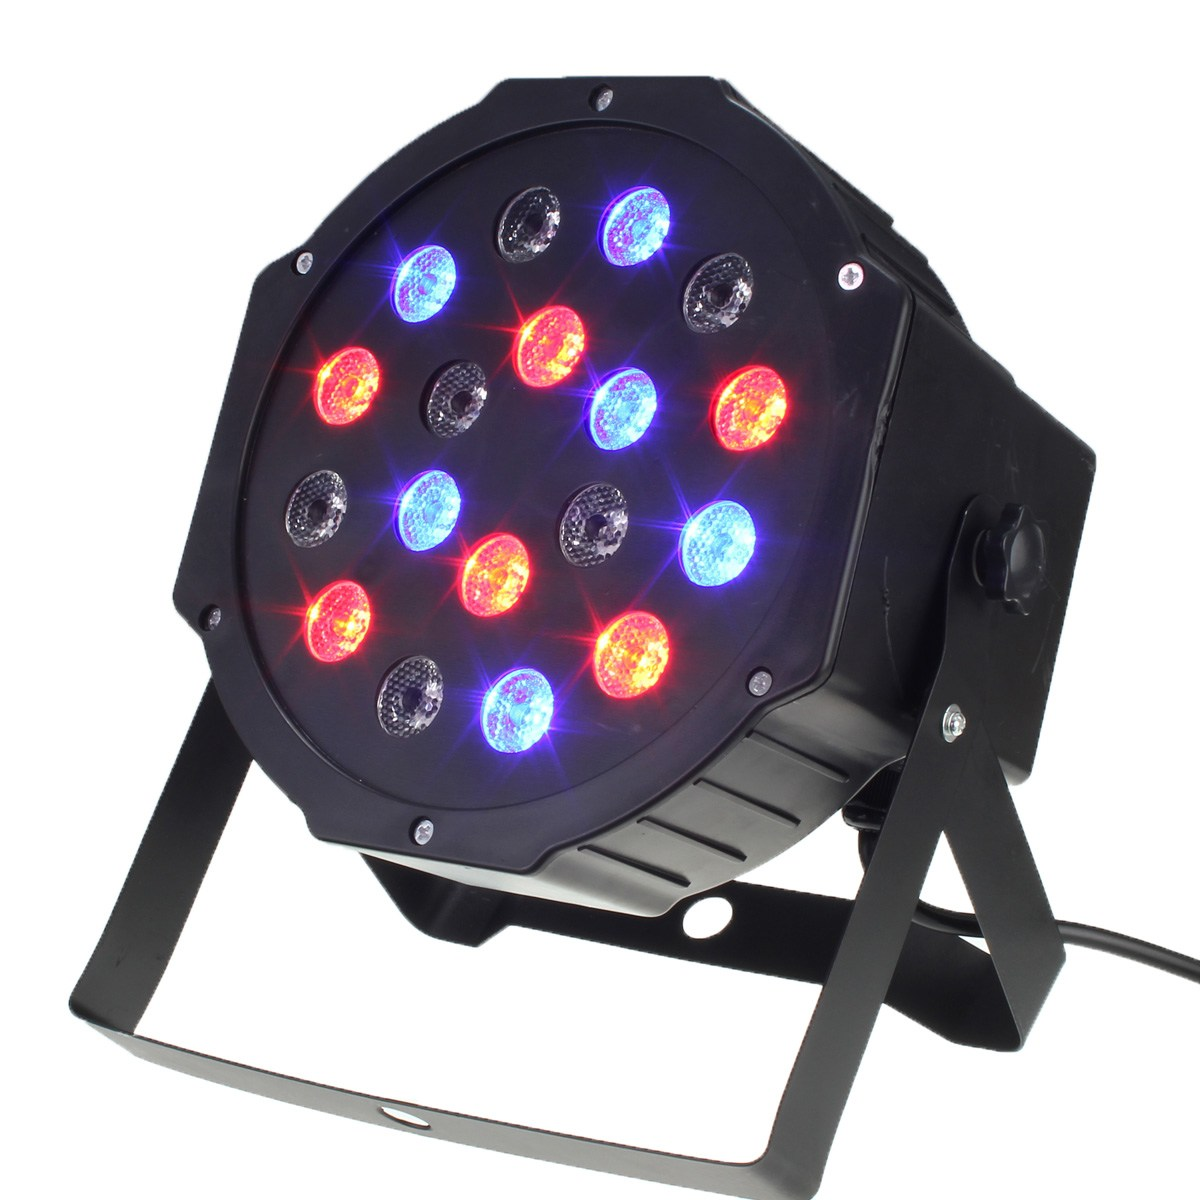 Auto Sound Laser Projector 18W RGB LED Stage Light Night Lamp DMX-512 PAR Party Disco KTV DJ Garden Stage Lighting Effect